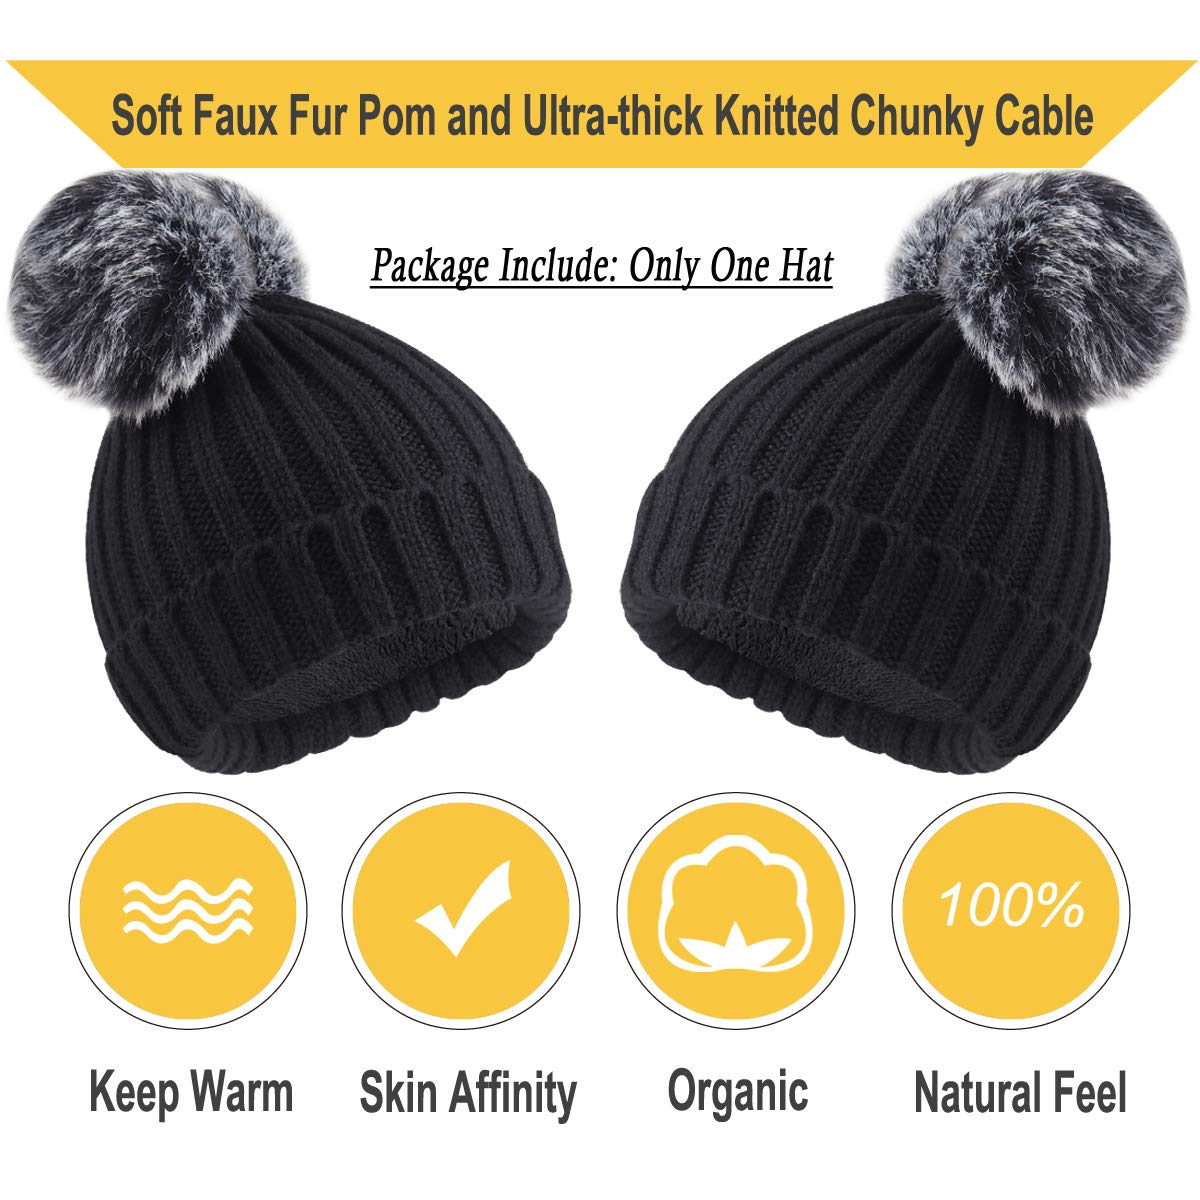 56764a03 Onway Baby Knit Winter Beanie with Warm Fleece Lined and Detachable 2 Faux  Fur Pom Pom, (Black Baby Beanie for Girls) at Amazon Women's Clothing store: